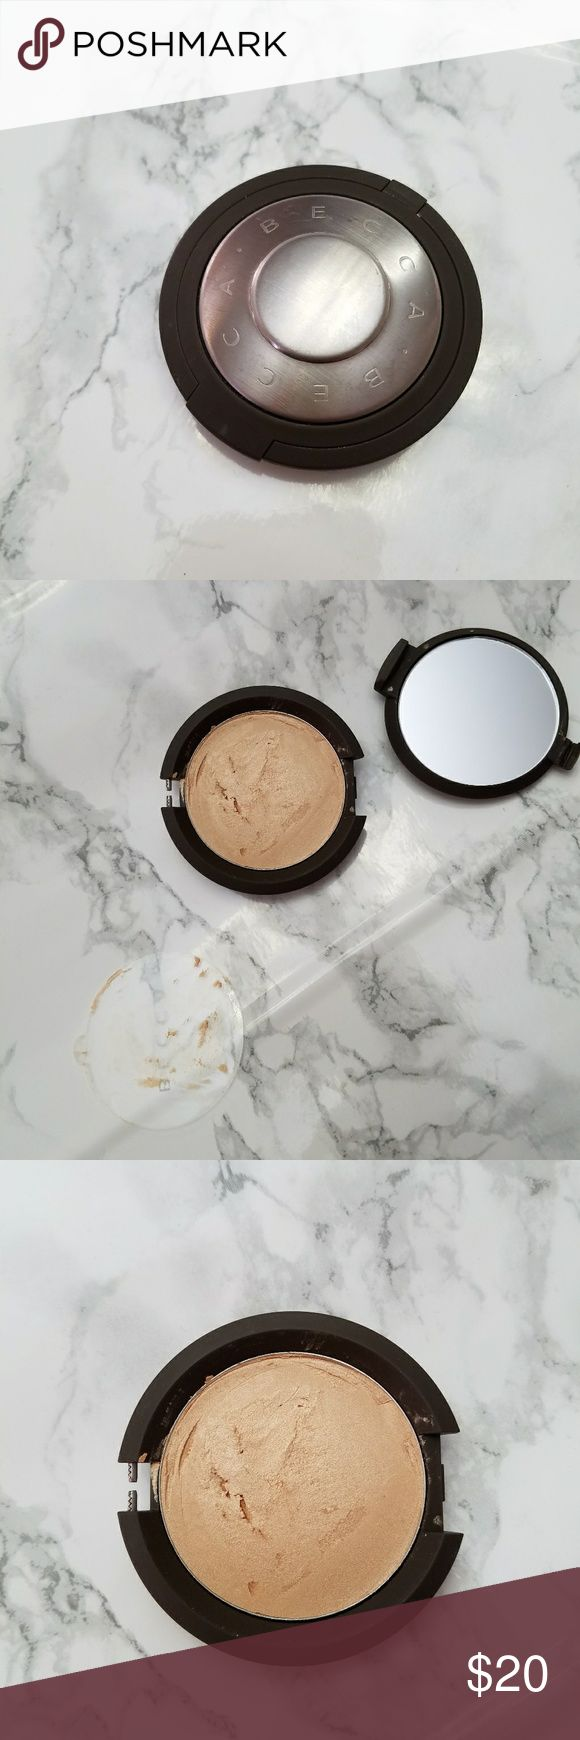 Becca skin perfector poured-moonstone Brand new but damaged in shipping. Top broken off and product got stuck on top of the plastic covering so I fixed it. Never used. BECCA Makeup Luminizer